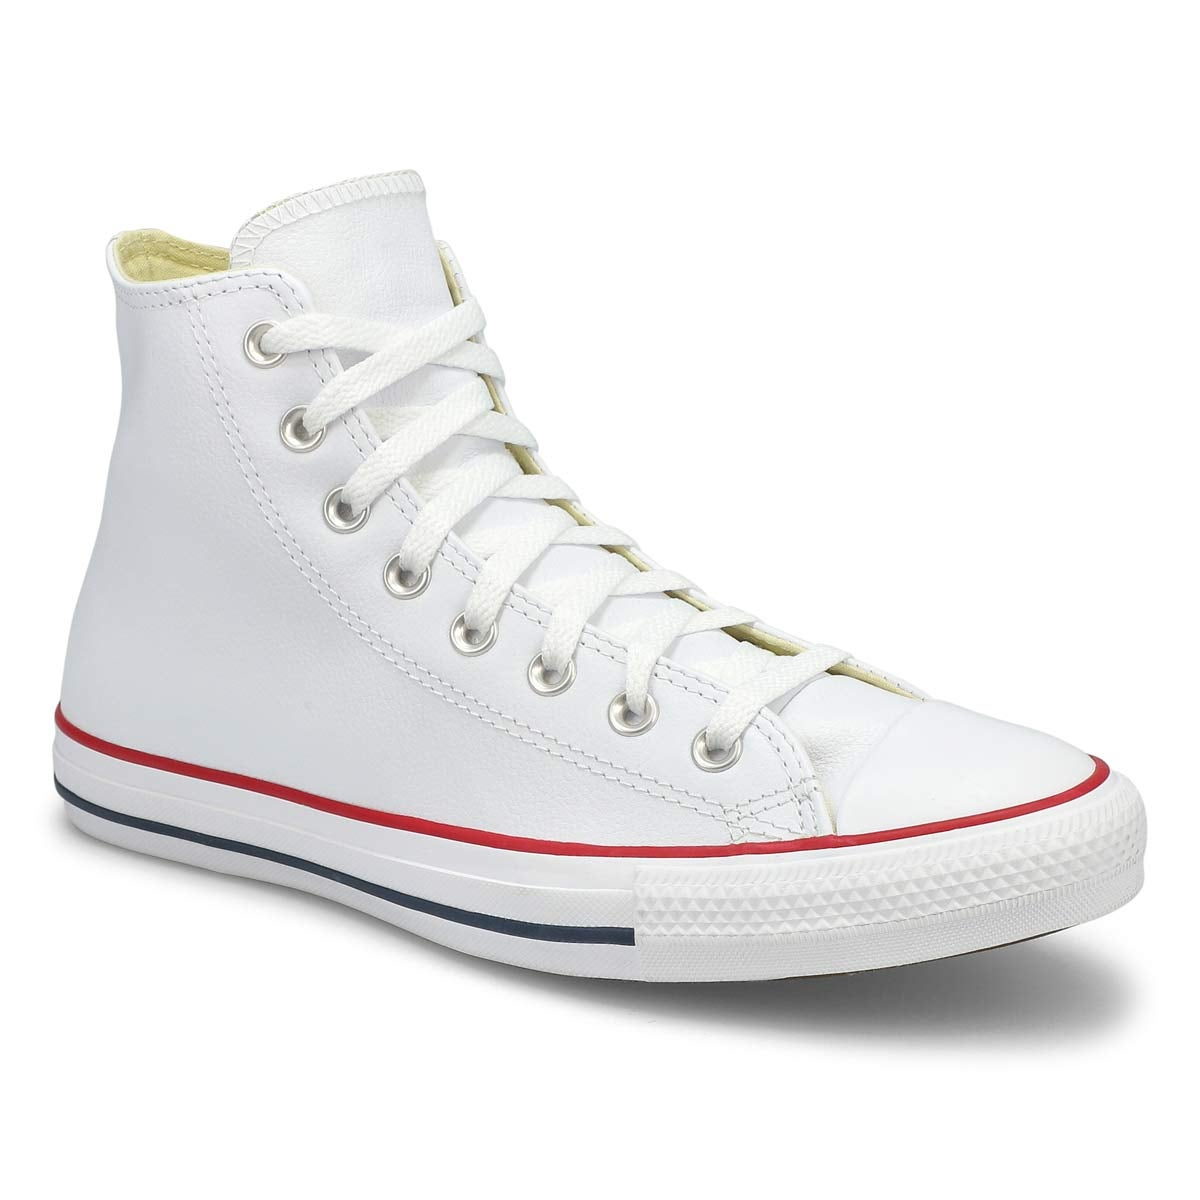 Lds CTAS Leather Hi wht snkr